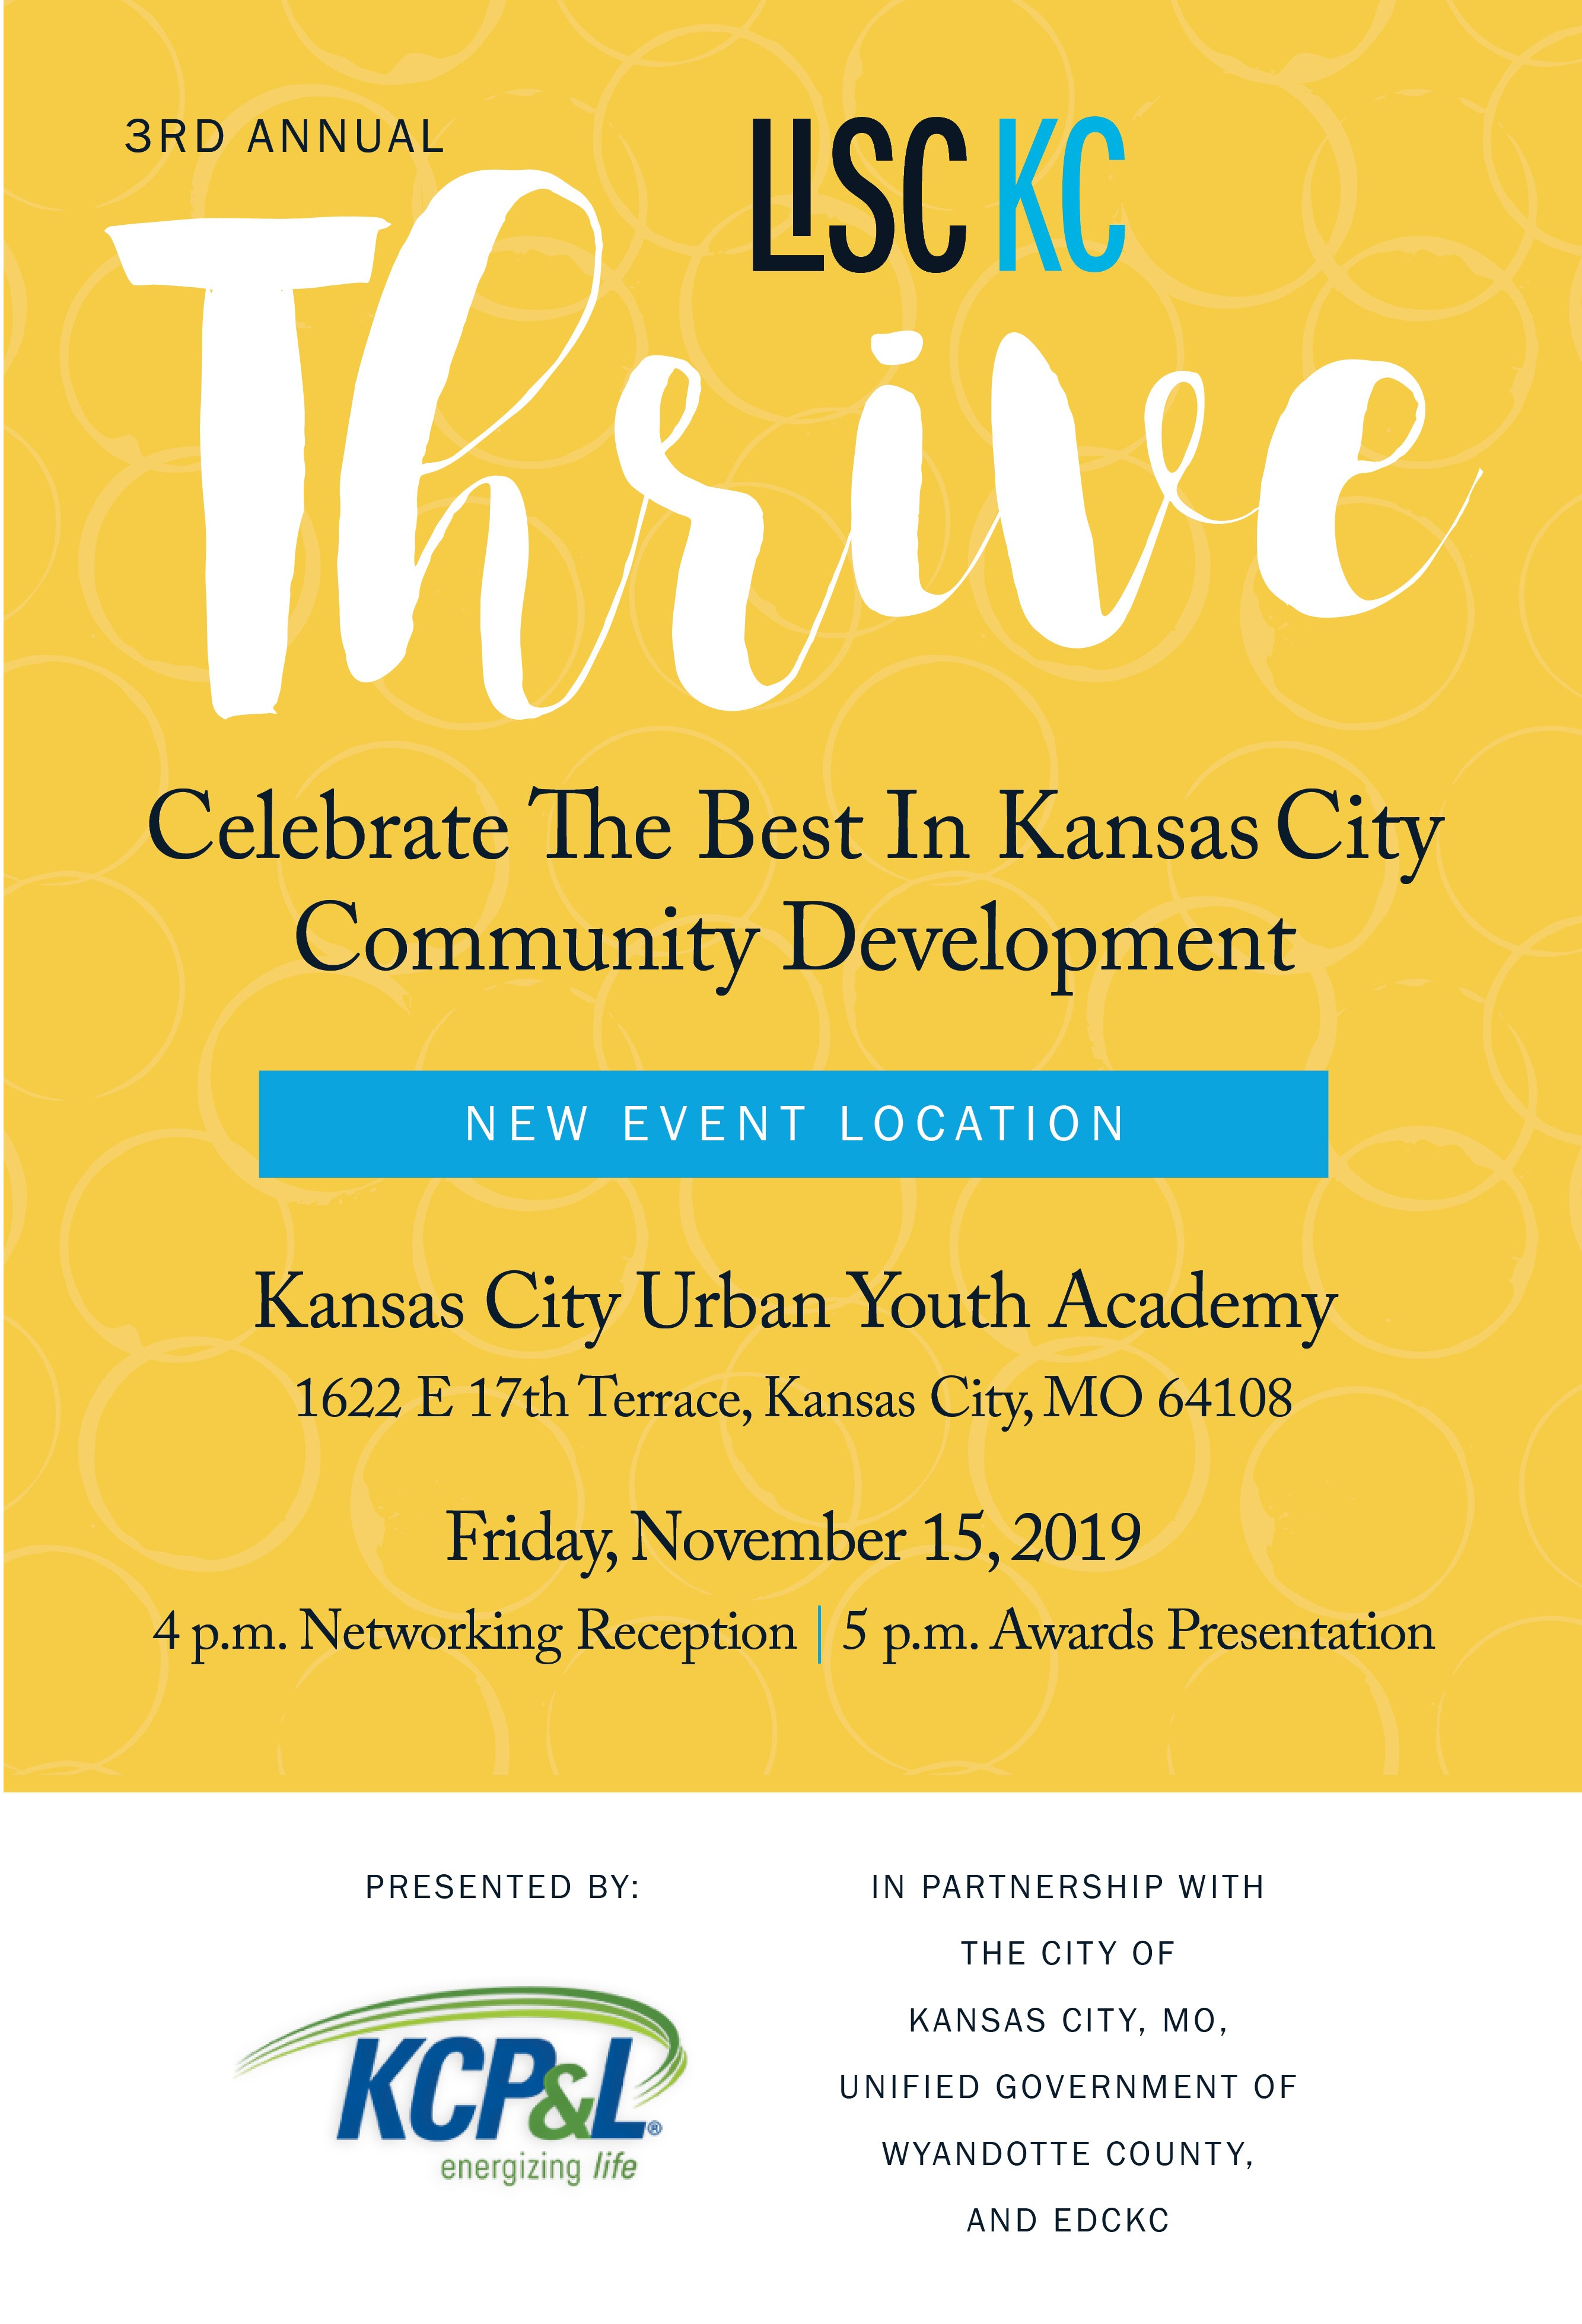 3rd Annual Thrive | LISC Kansas City